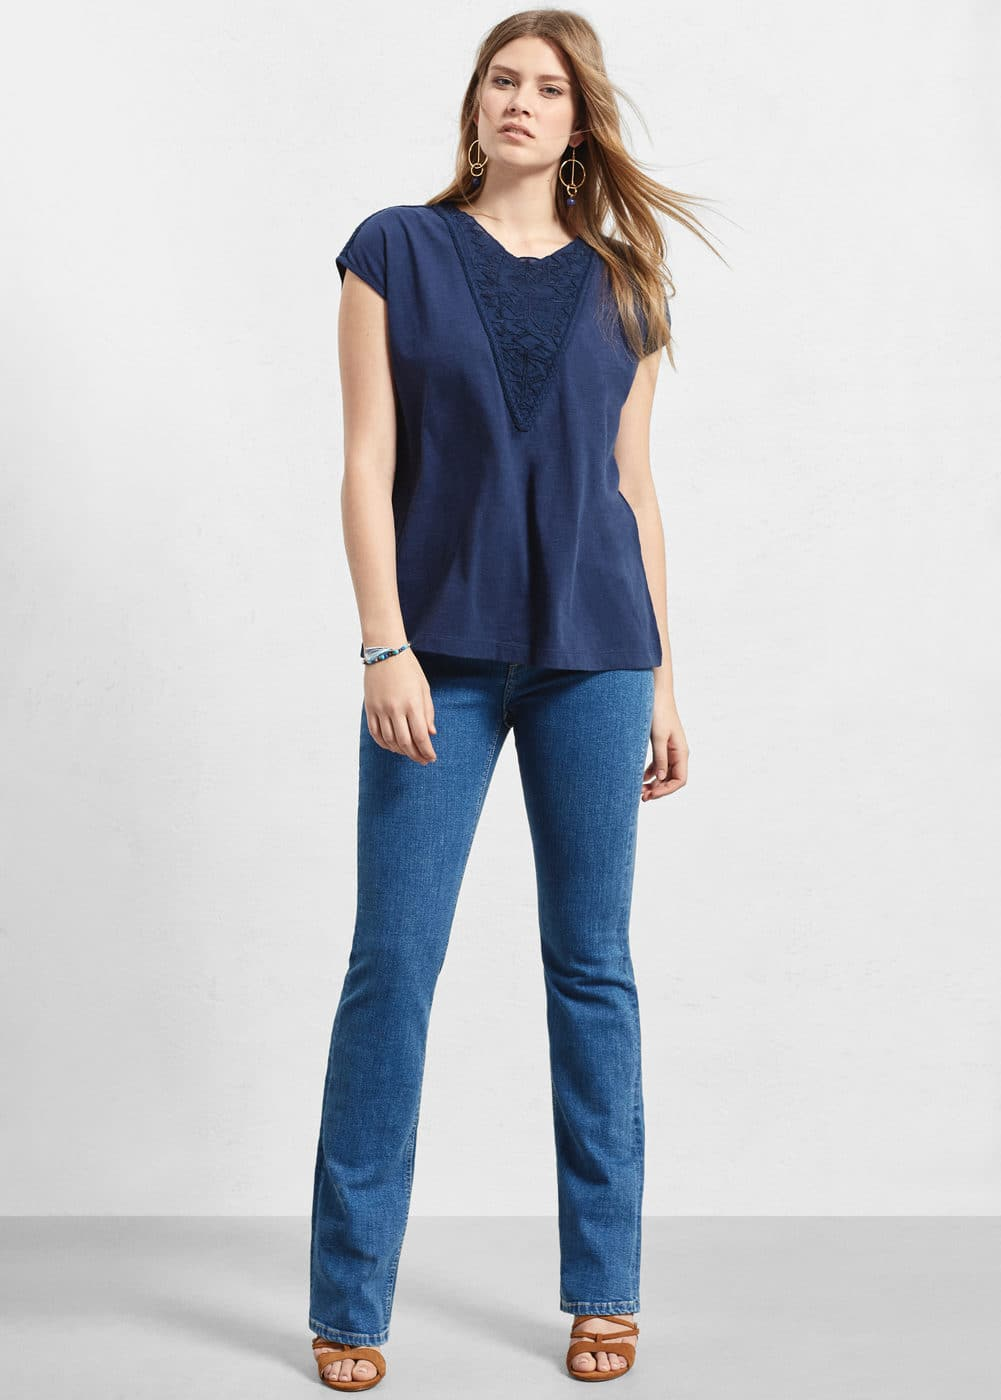 Embroidered cotton t-shirt | VIOLETA BY MANGO